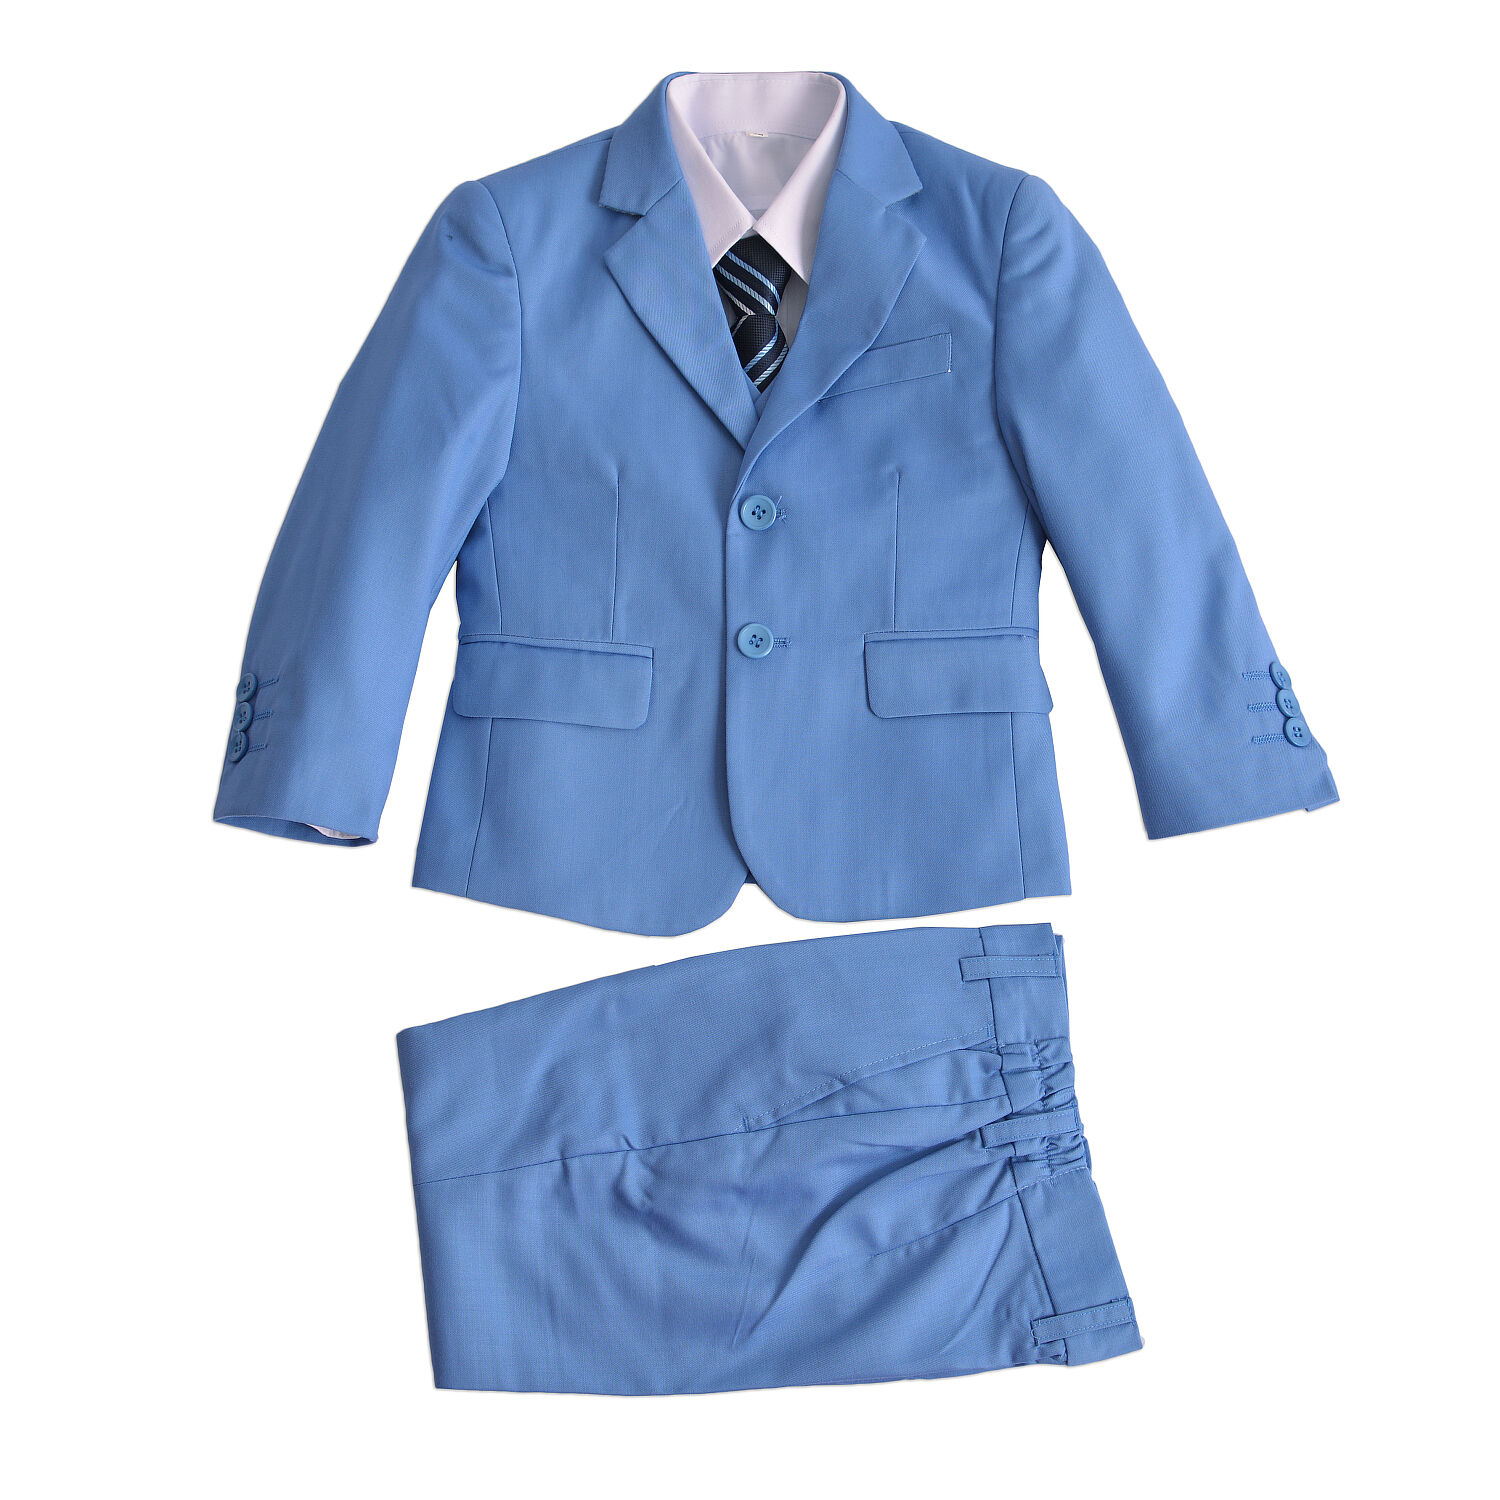 Attractive Boys Wedding Suit Festooning - Womens Dresses & Gowns ...